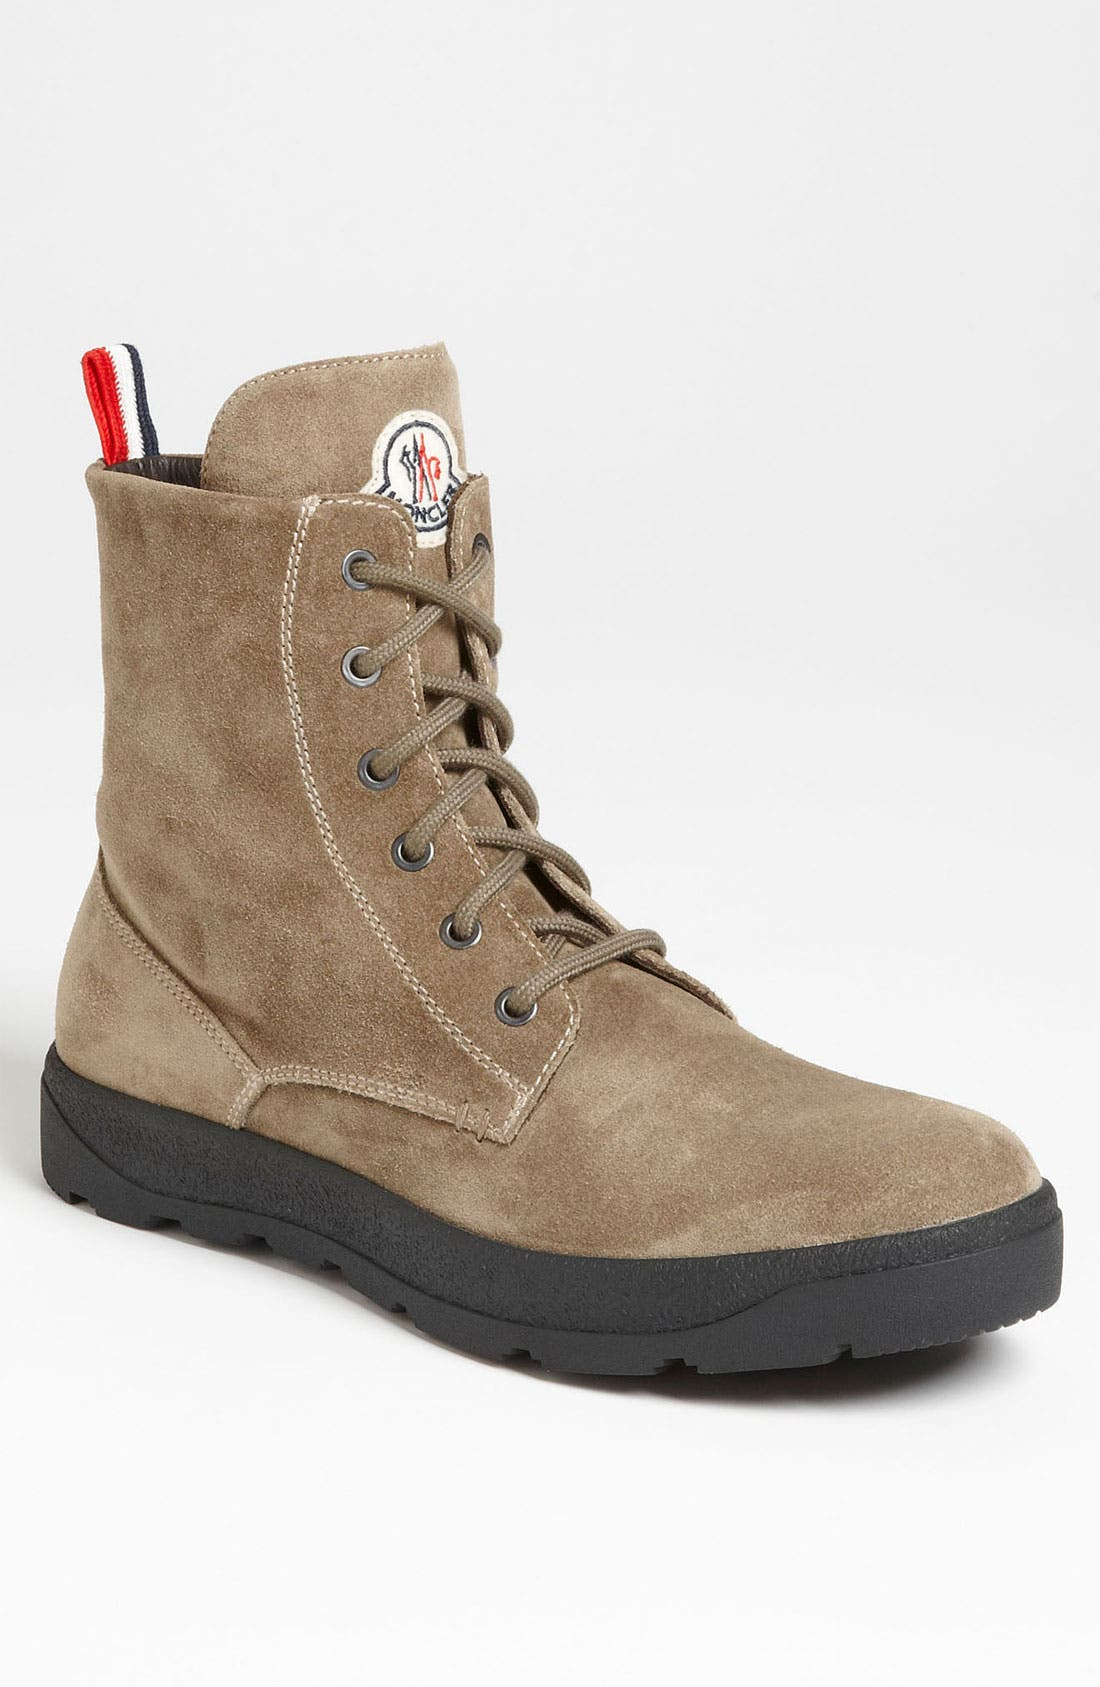 Alternate Image 1 Selected - Moncler 'Park' Suede Boot